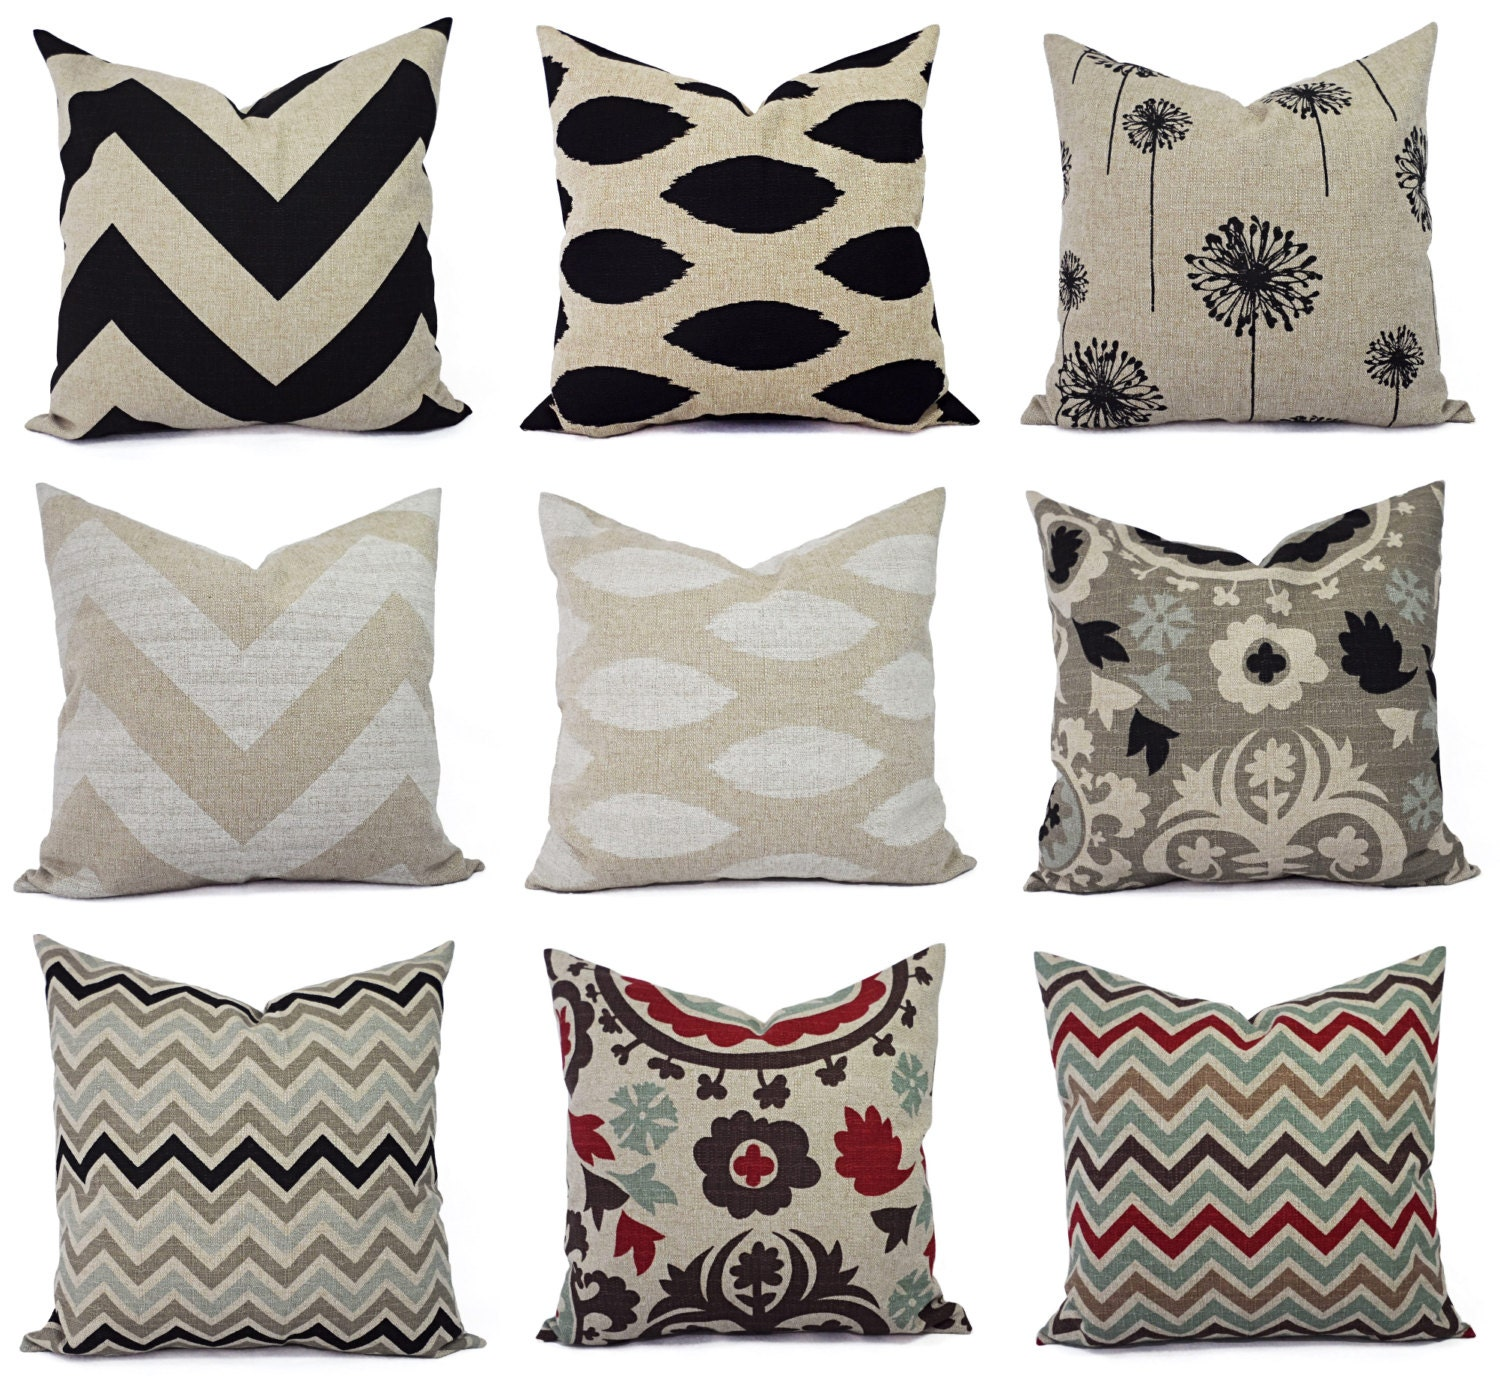 Brown Sofa Pillows: One Brown Couch Pillow Cover Brown And Cream By